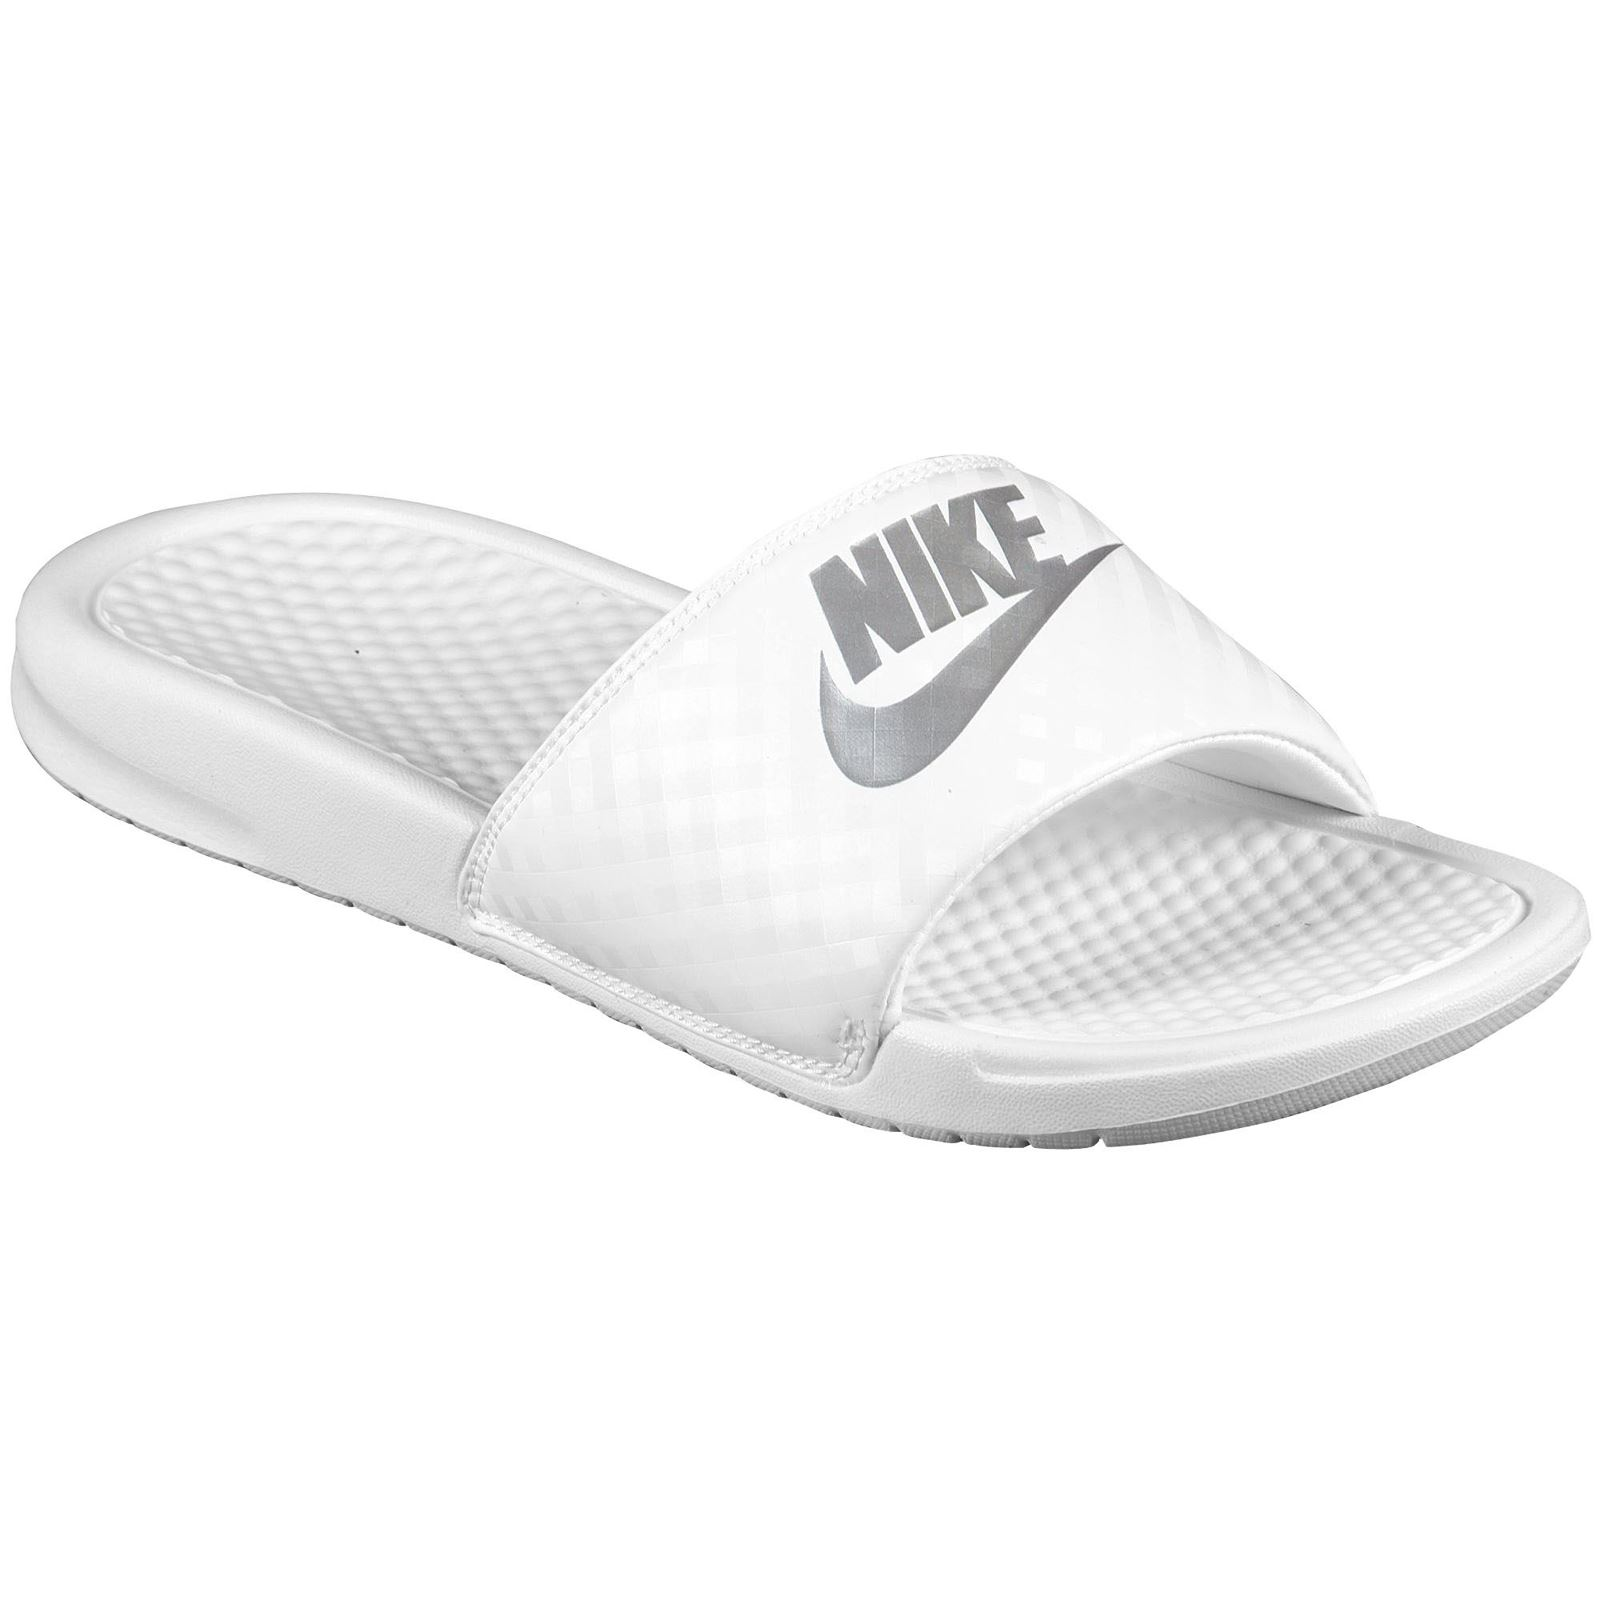 c2ca8e52c49b Nike Benassi Just Do It White White Womens Sandals - 343881-102 ...